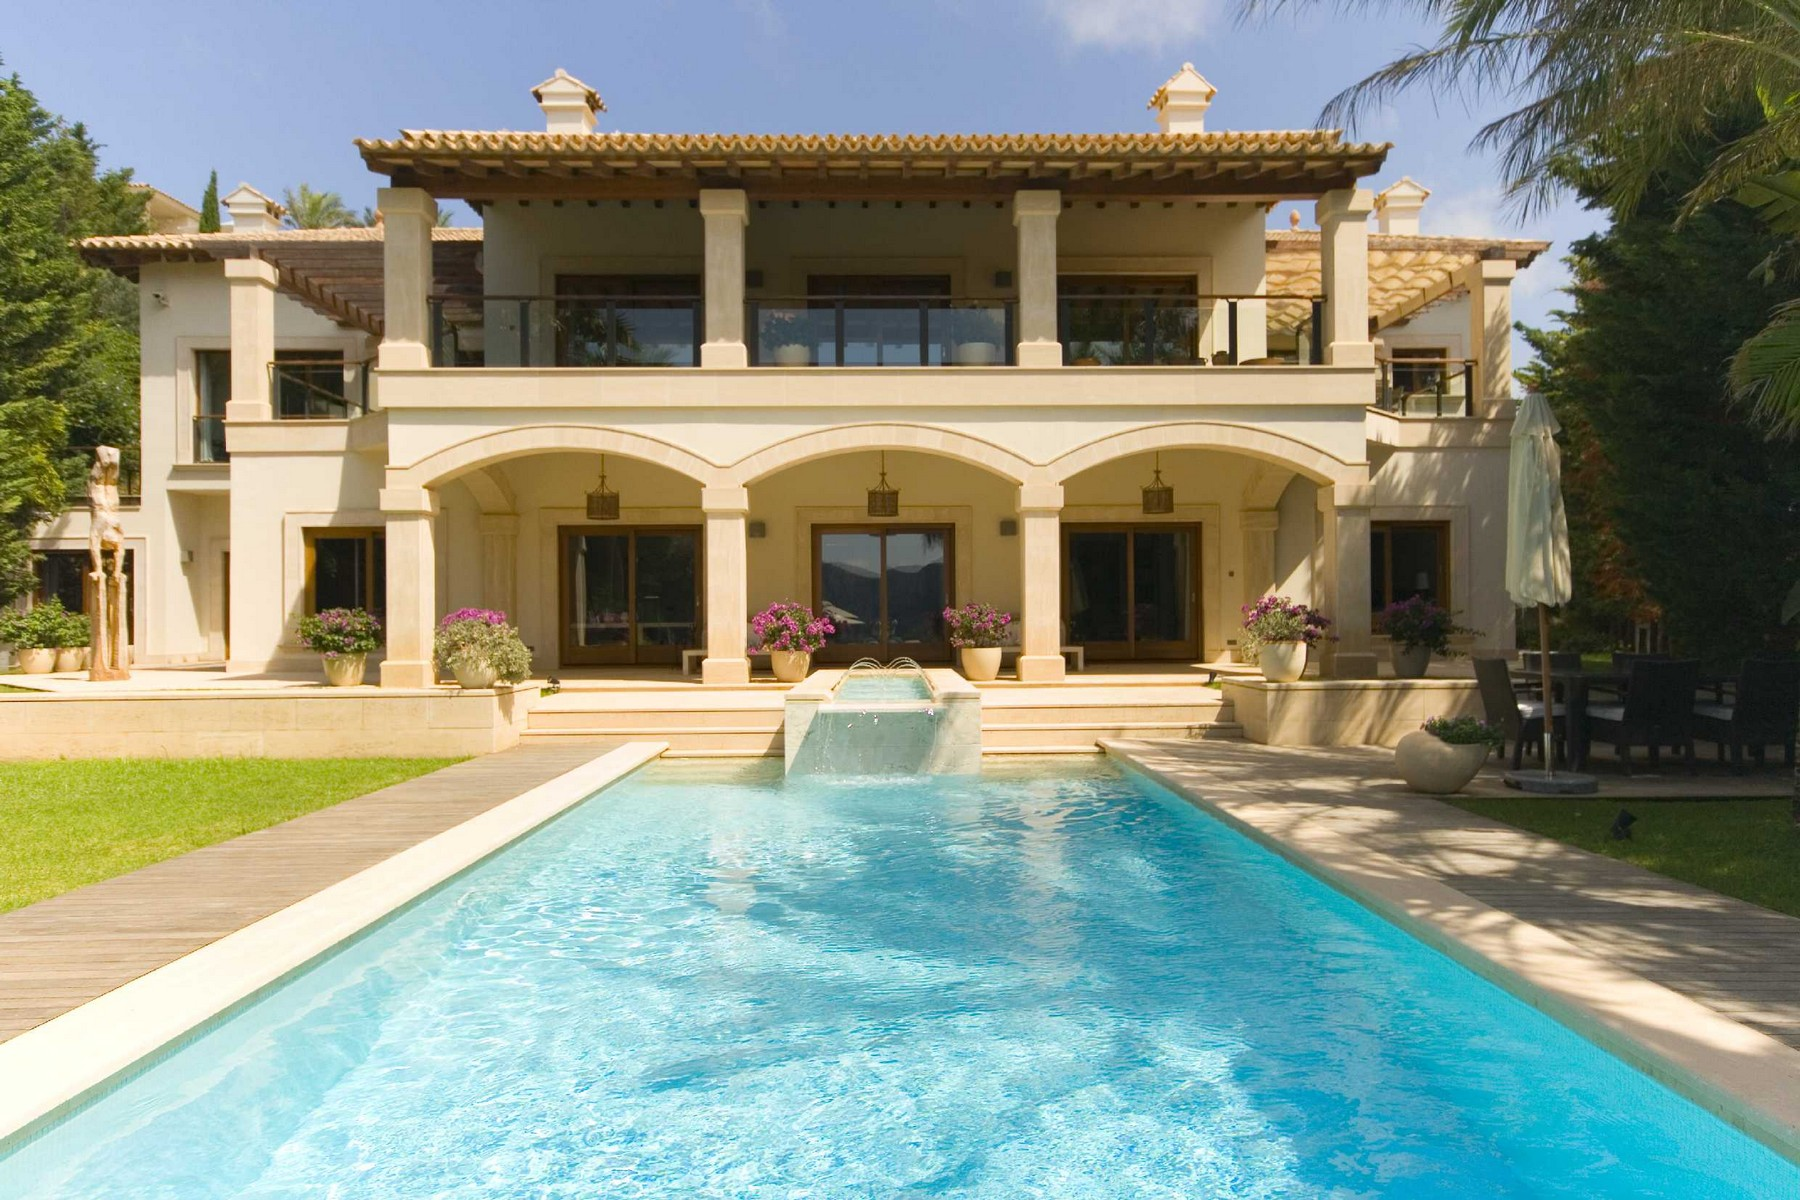 Multi-Family Home for Sale at Luxury villa in Las Brisas, Port Andratx Andratx, Mallorca, 07157 Spain